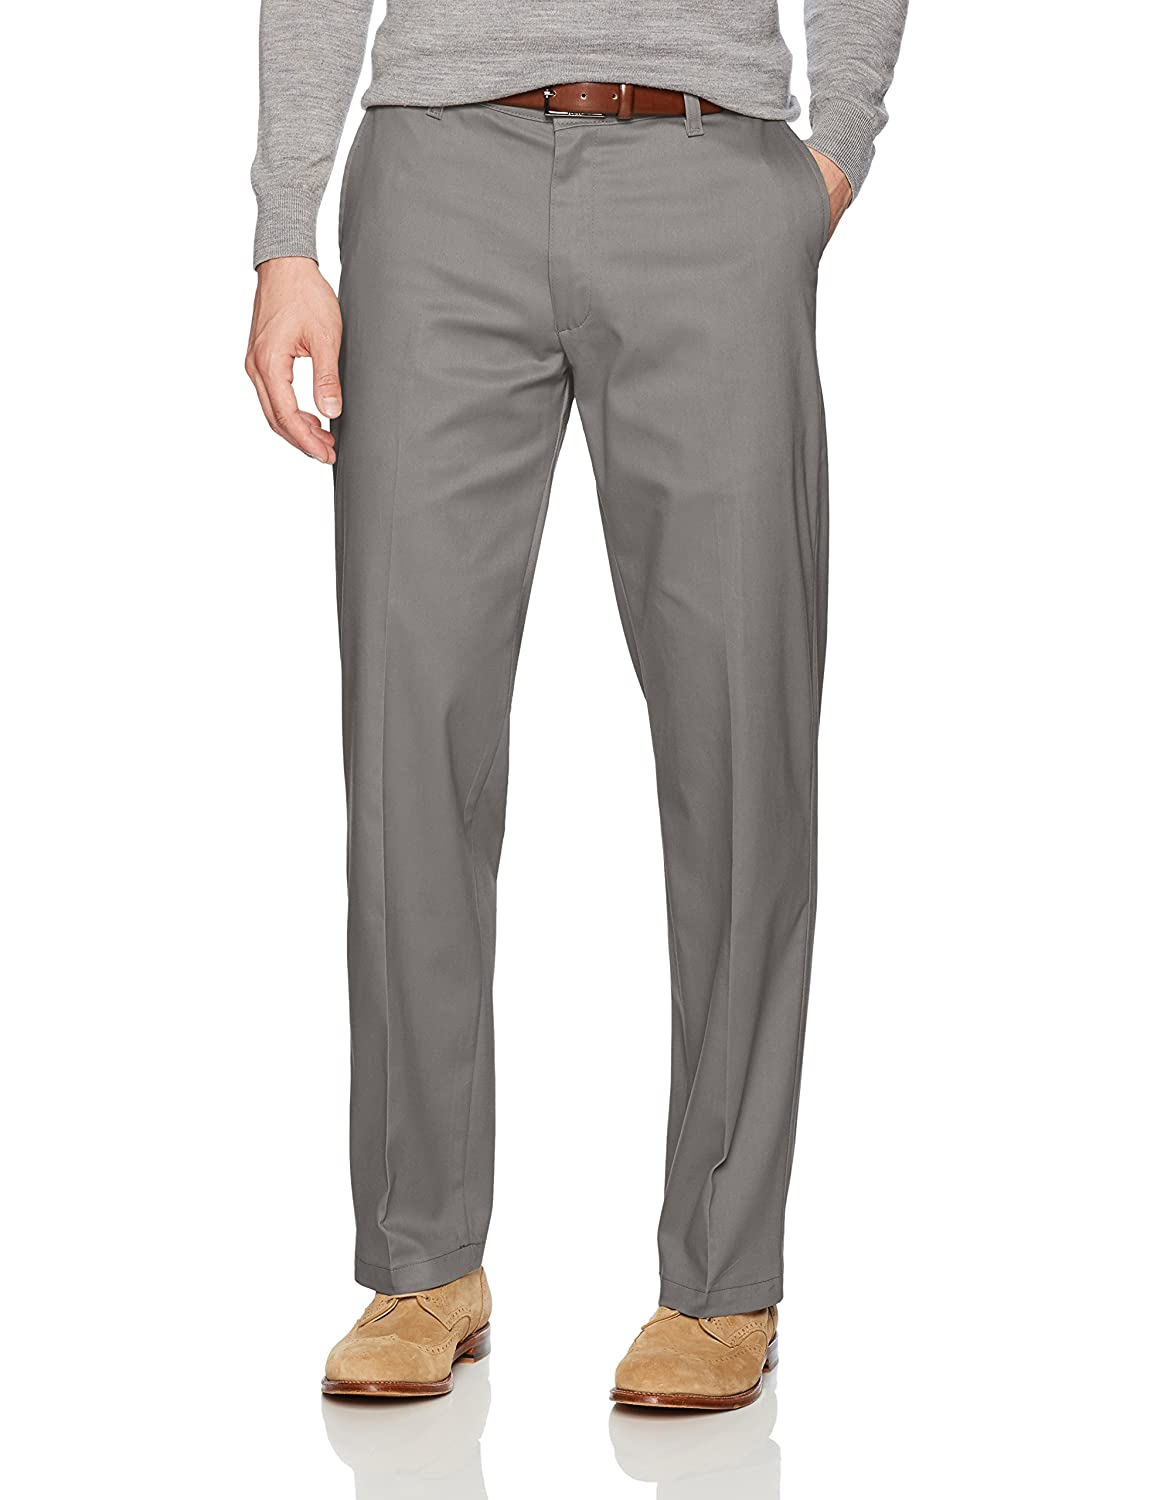 LEE Men's Total Freedom Stretch Relaxed Fit Flat Front Pant Lee Men's Sportswear 42831